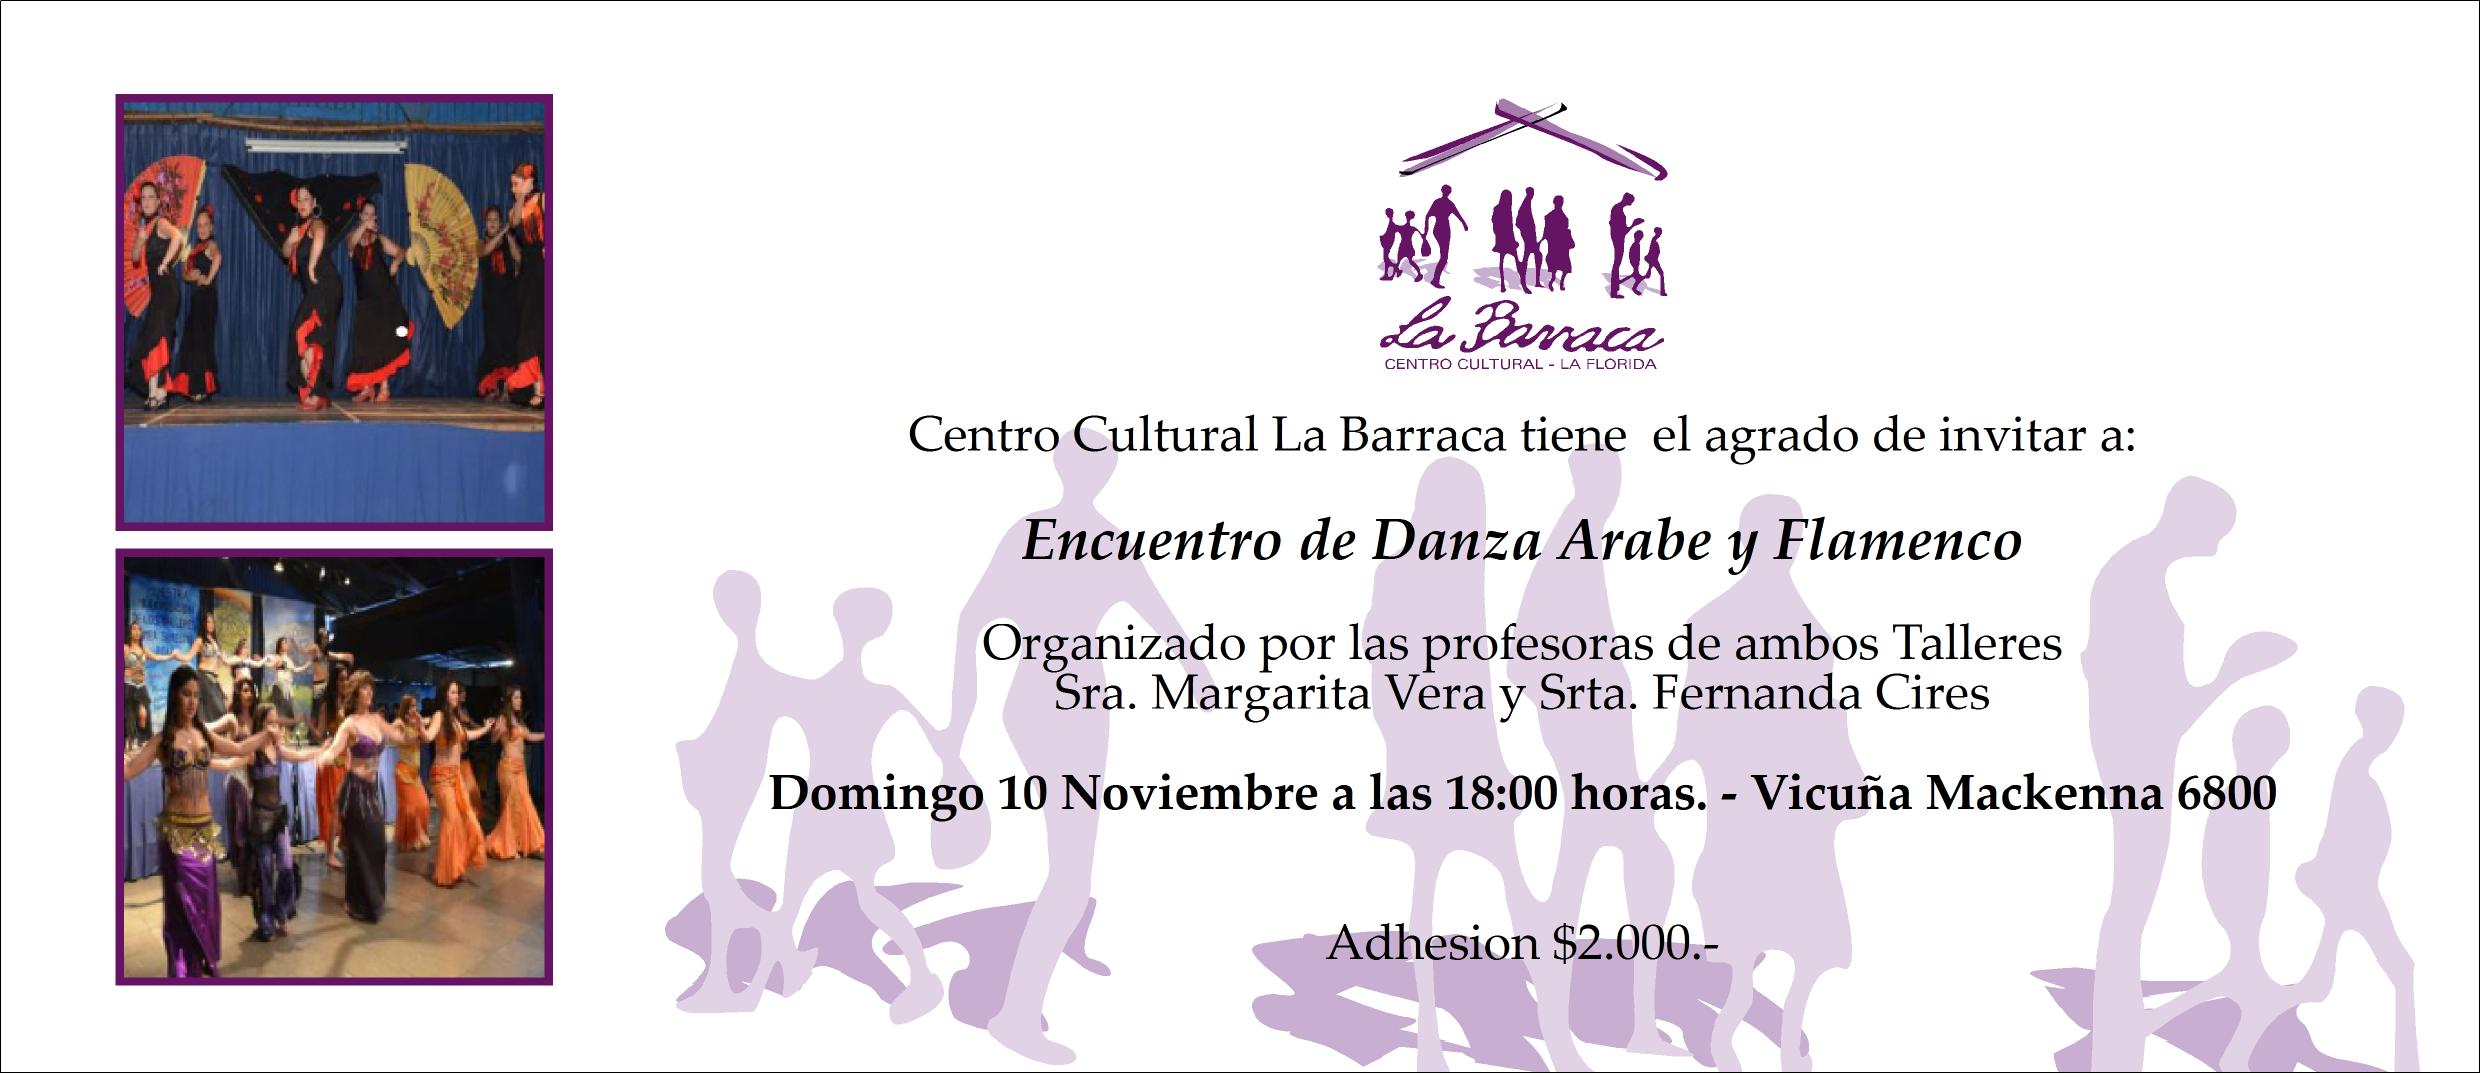 invitacion la barraca arabe y flamenco - nov2013